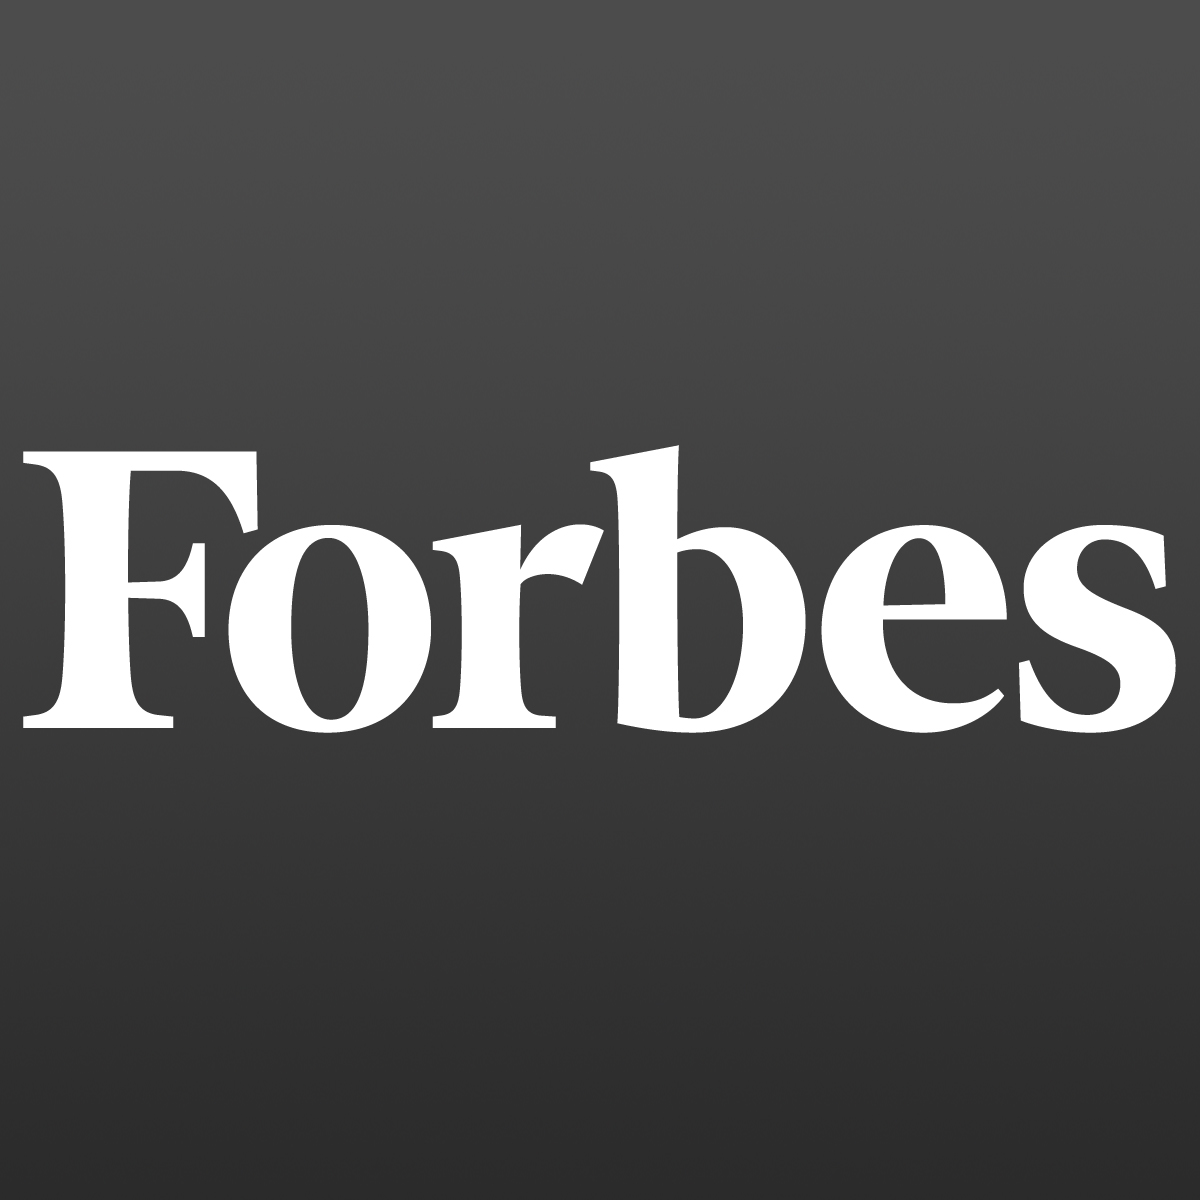 An Imperfect Test: The Problem  With Job Performance Appraisals - Forbes